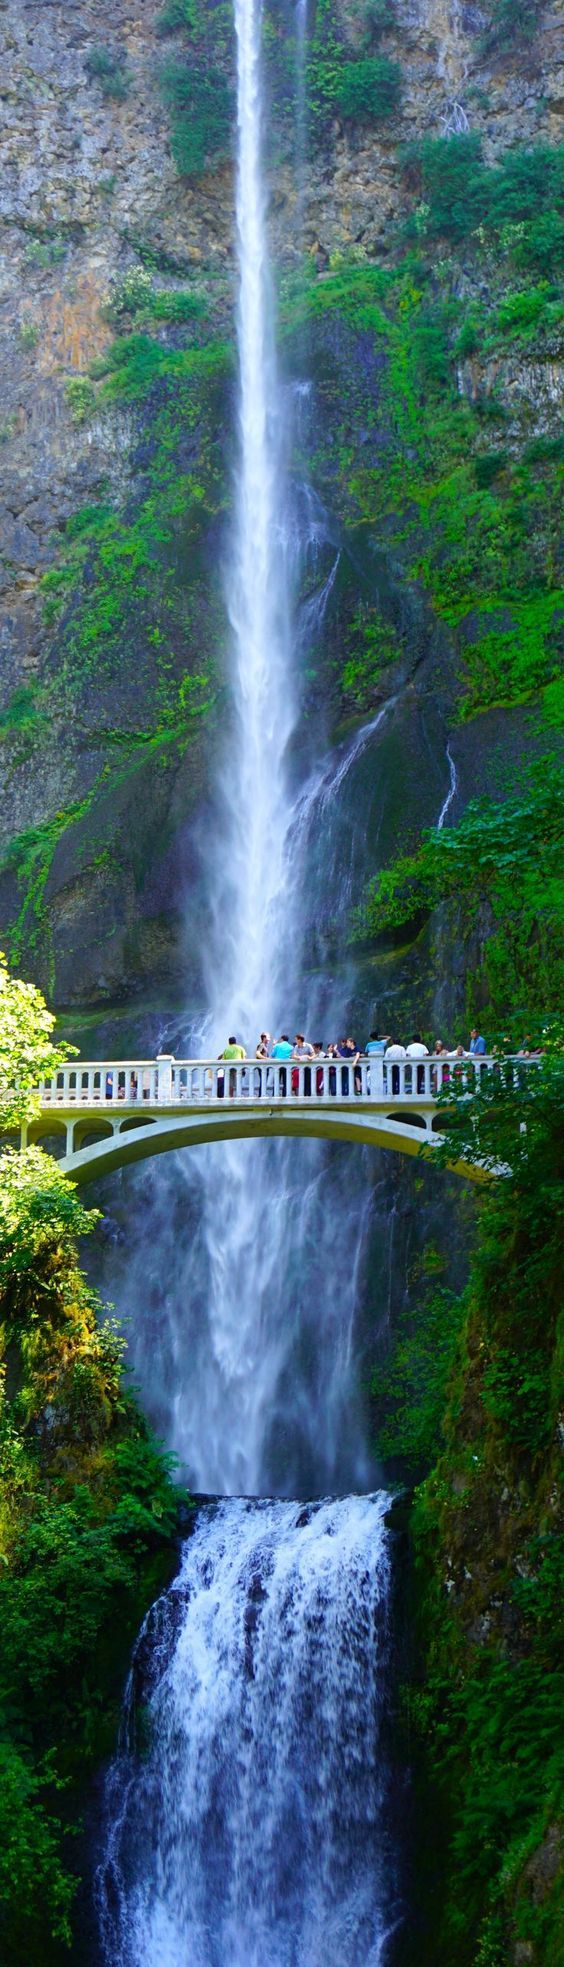 Multnomah Falls, Columbia River Gorge | Oregon, USA                                                                                                                                                      More